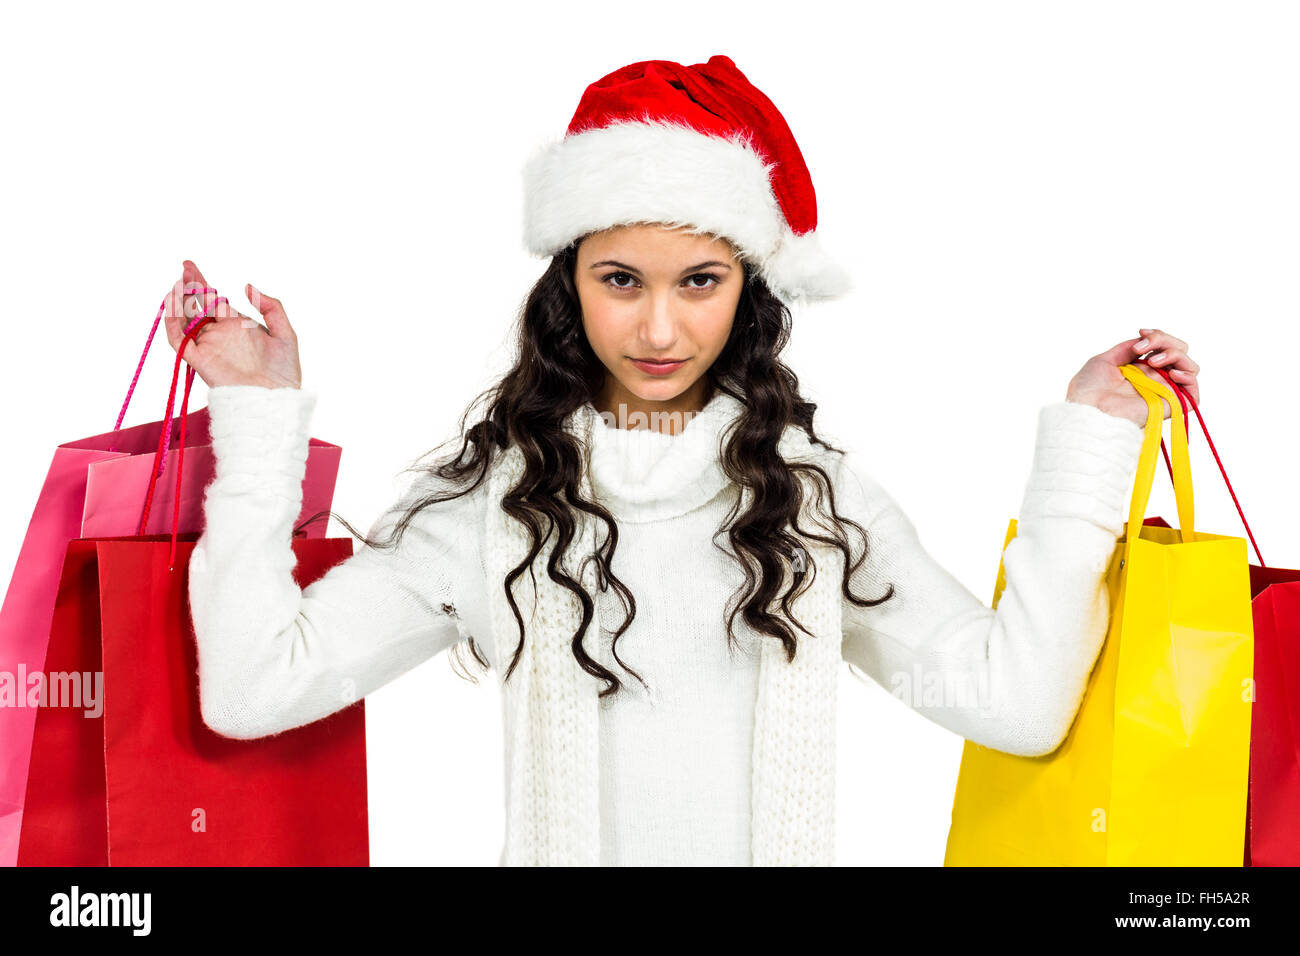 453f78c53c468 Woman with christmas hat holding colored shopping bags Stock Photo ...